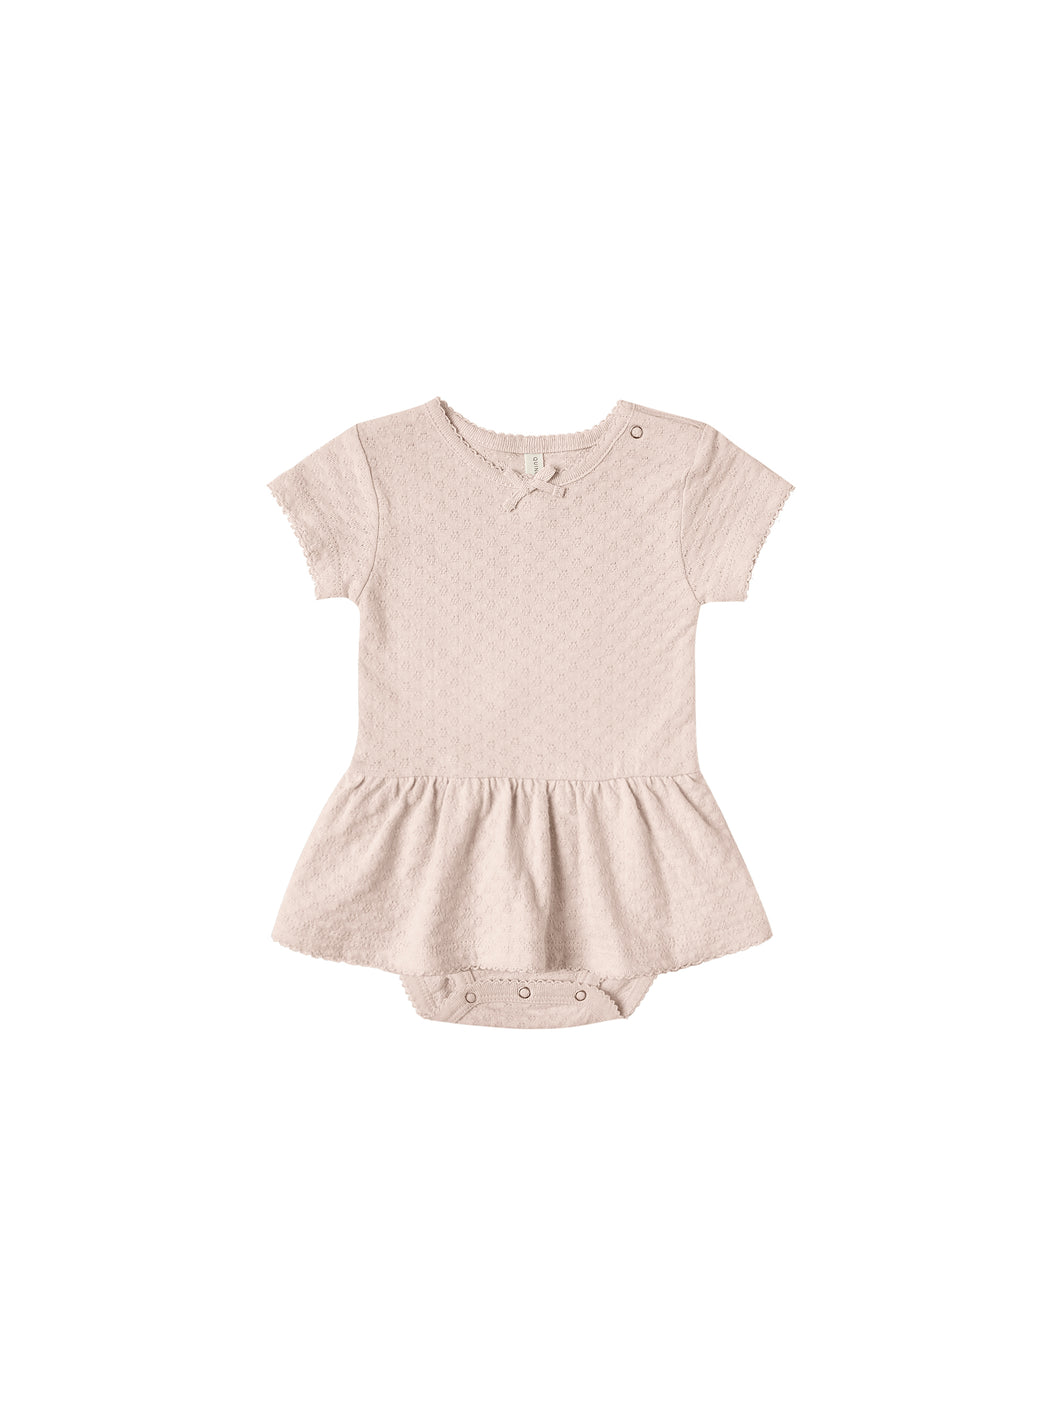 Pointelle Skirted SS Onesie in Petal